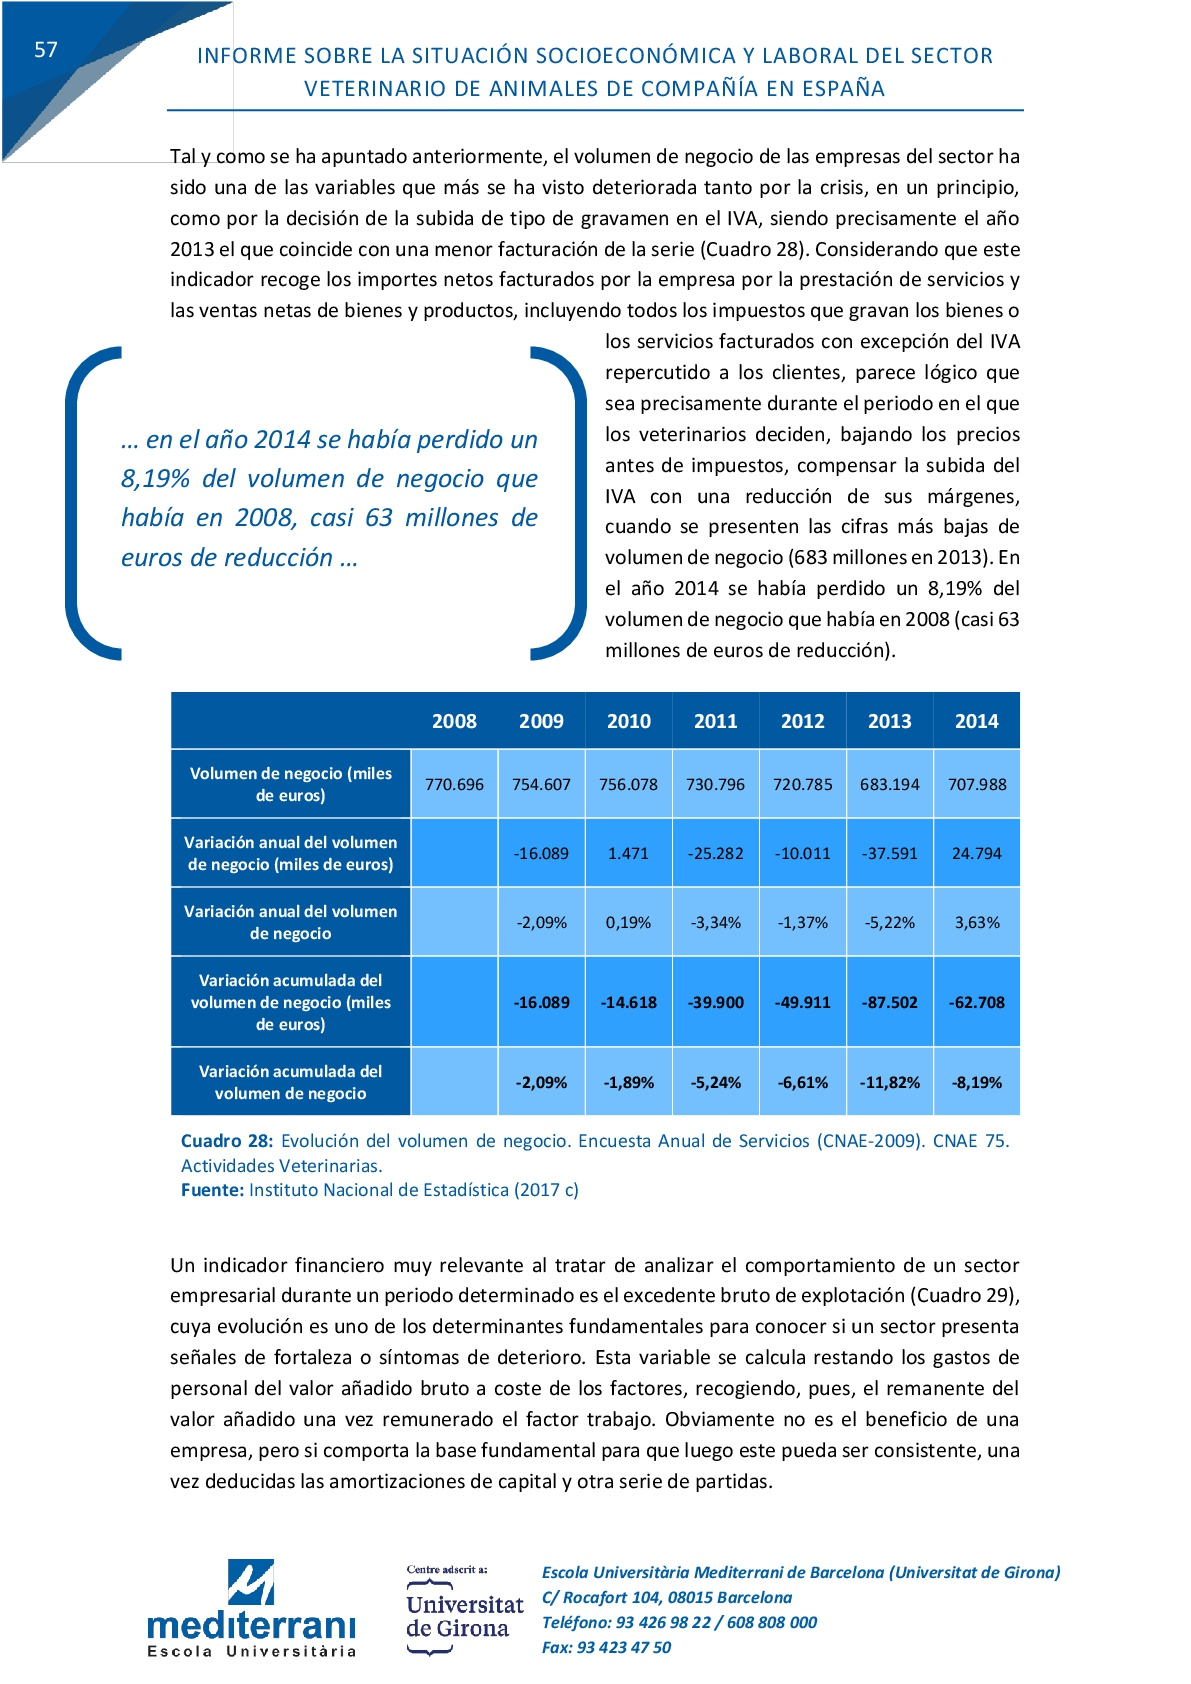 Informe-Veterinario-2017-+-informe-legal-2015-(3)-062